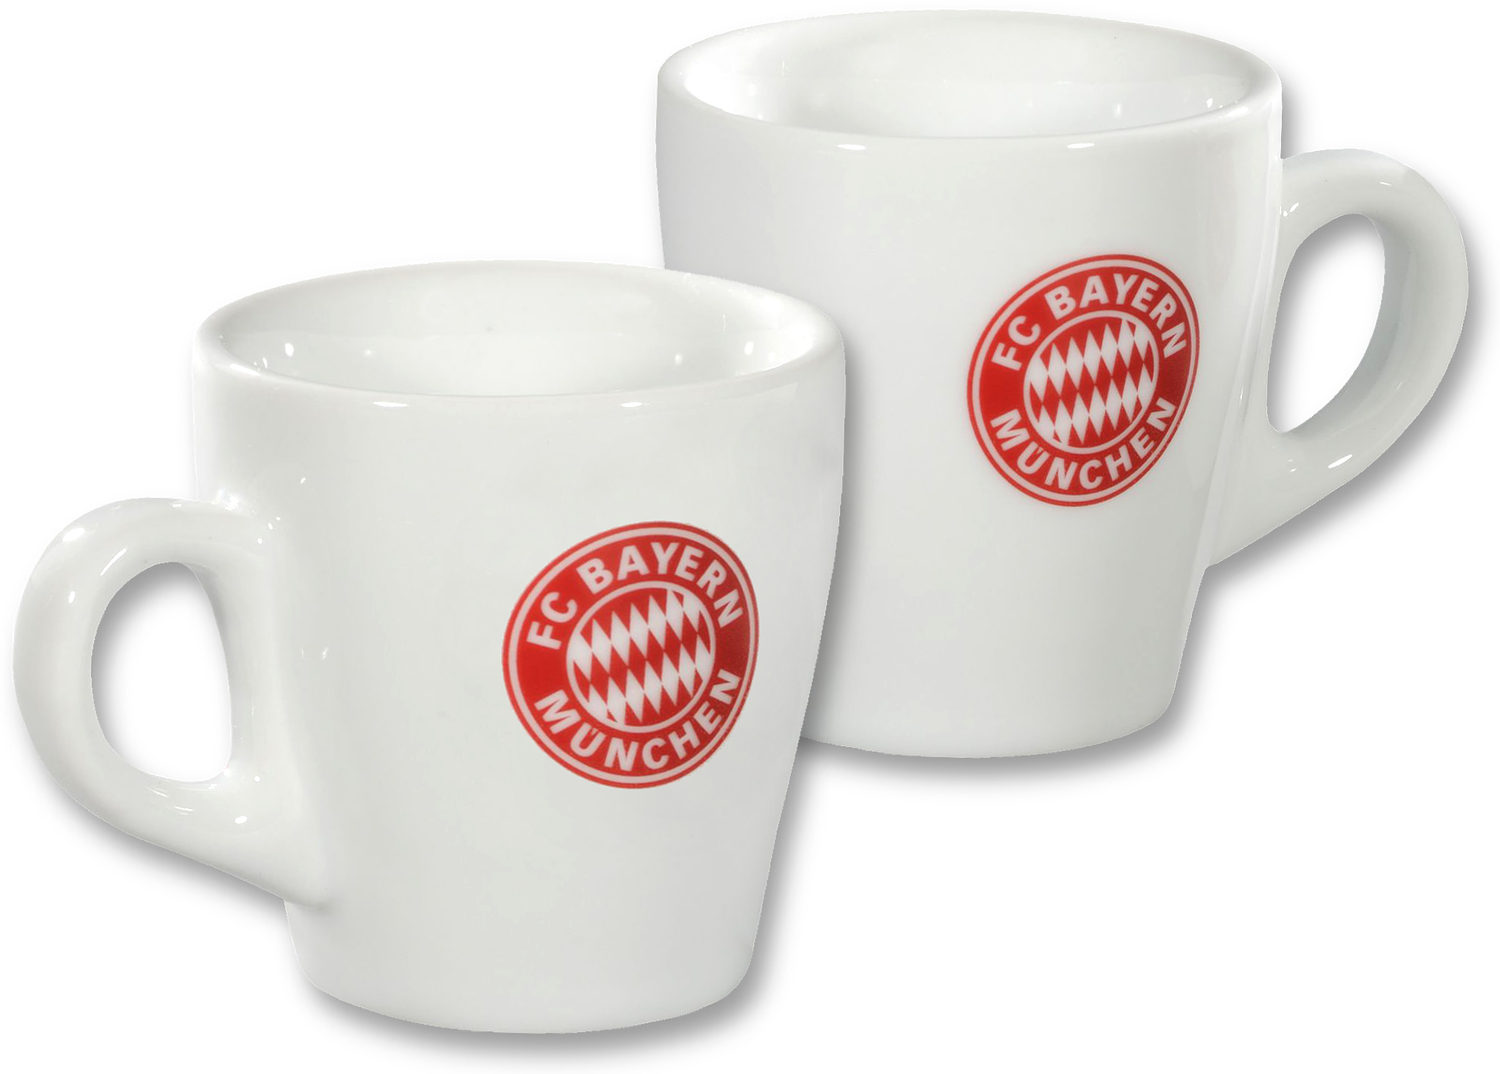 fc bayern m nchen espresso tassen 2er set wei. Black Bedroom Furniture Sets. Home Design Ideas